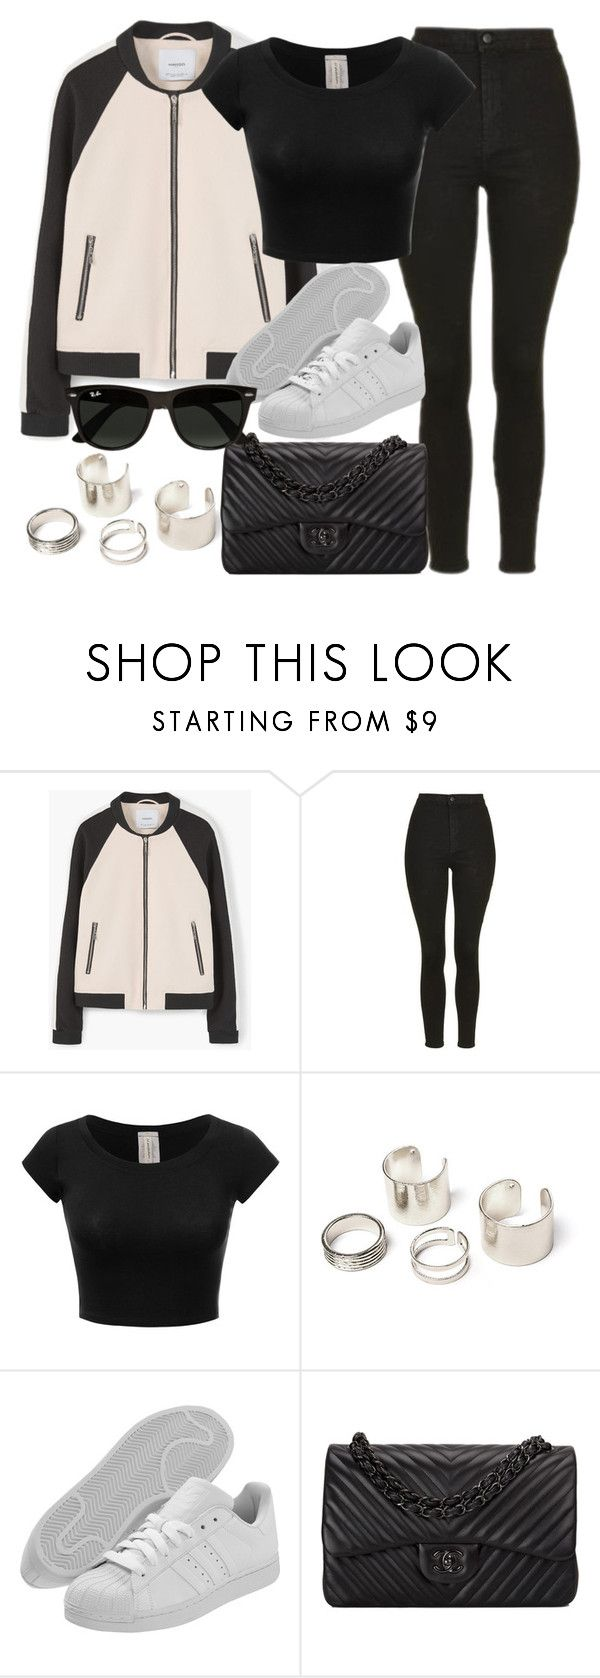 """""""Style #11057"""" by vany-alvarado ❤ liked on Polyvore featuring MANGO, Topshop, adidas Originals, Chanel and Ray-Ban"""